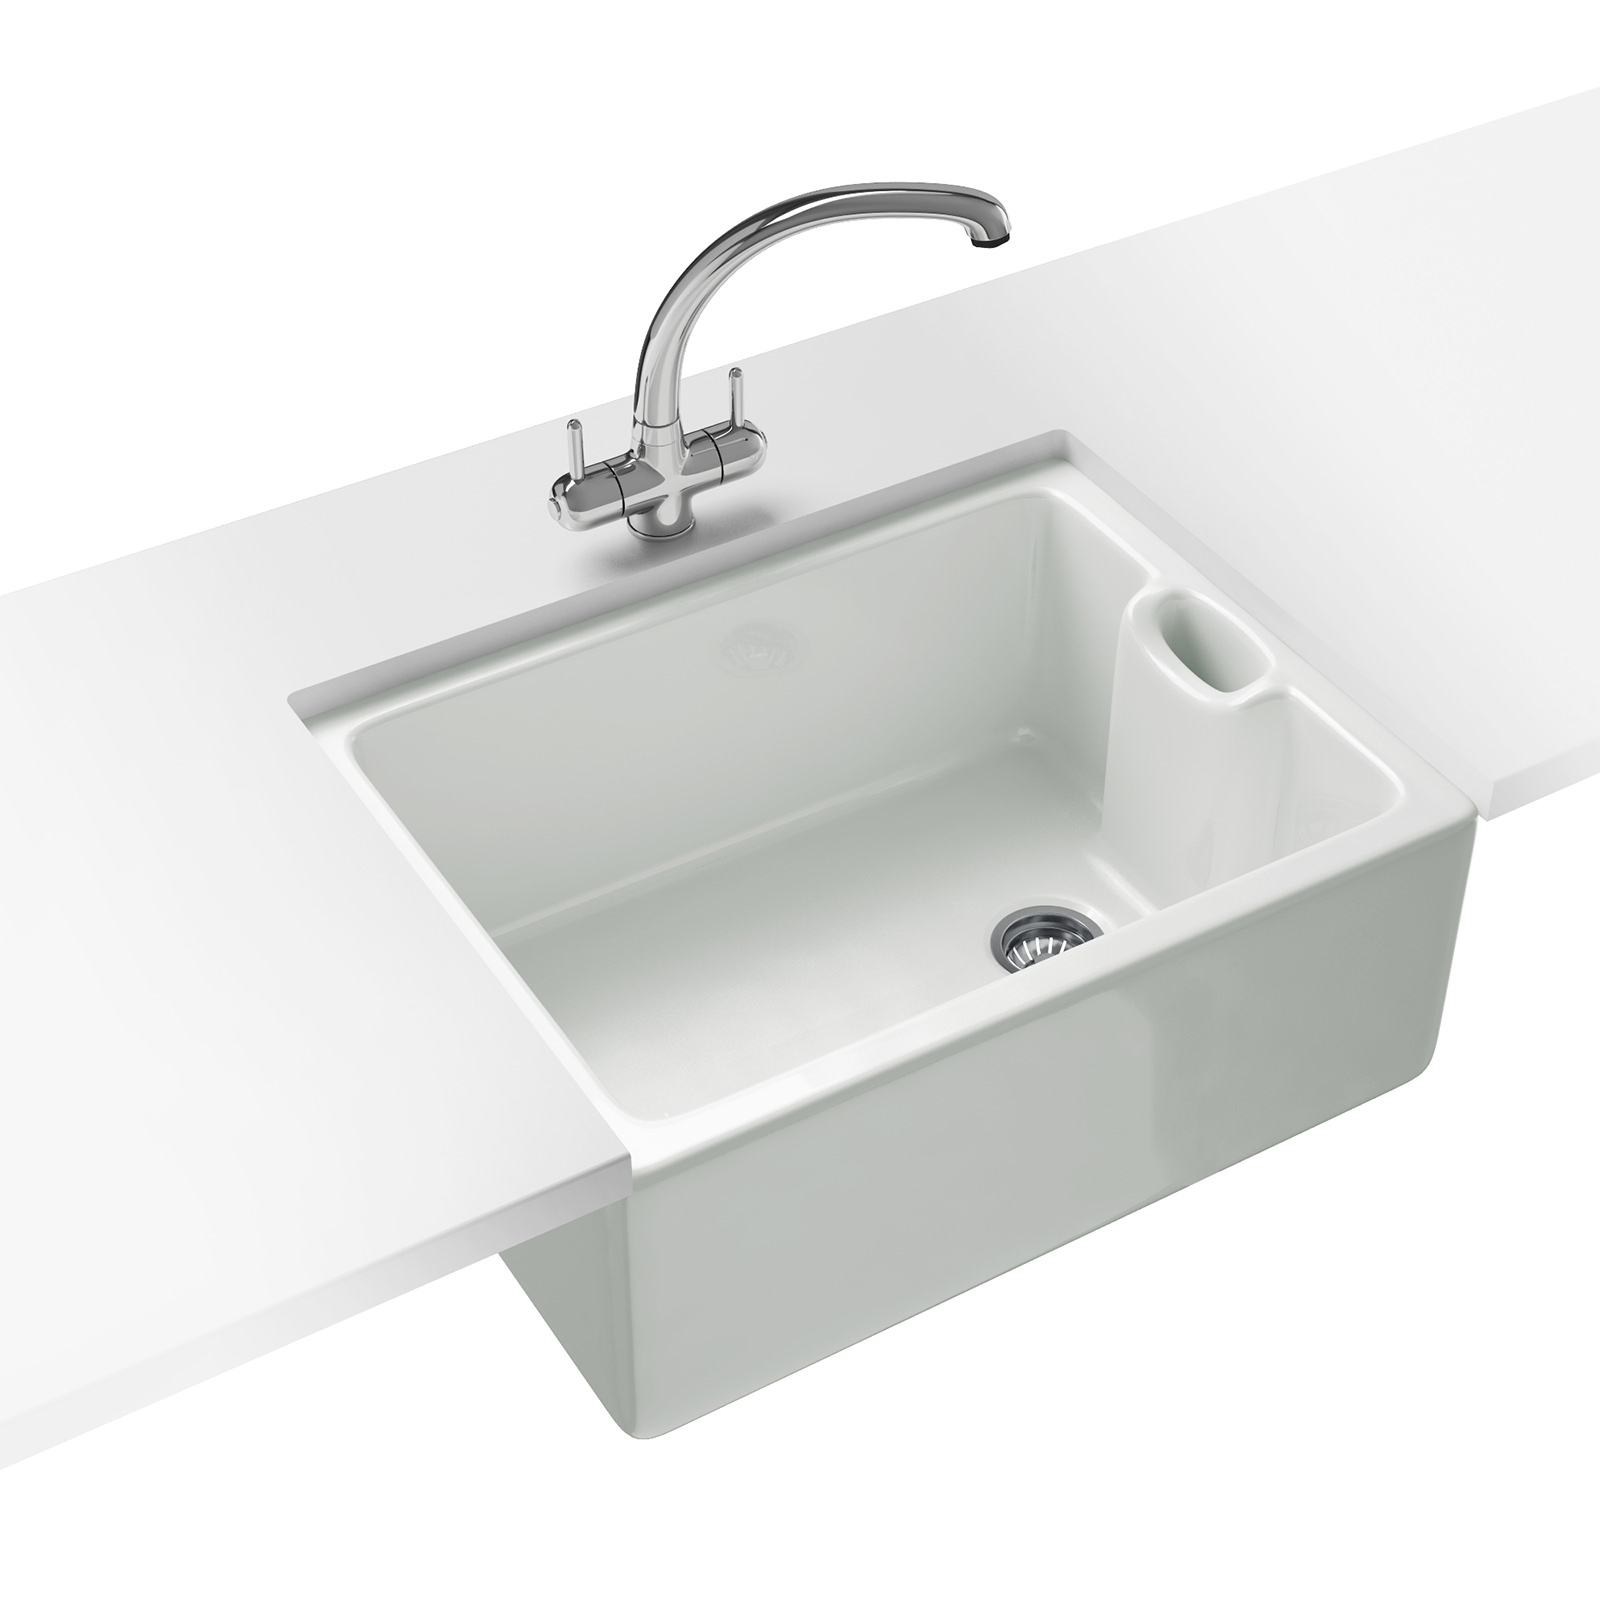 White Kitchen Taps: Franke Belfast Propack BAK 710 Ceramic White Kitchen Sink